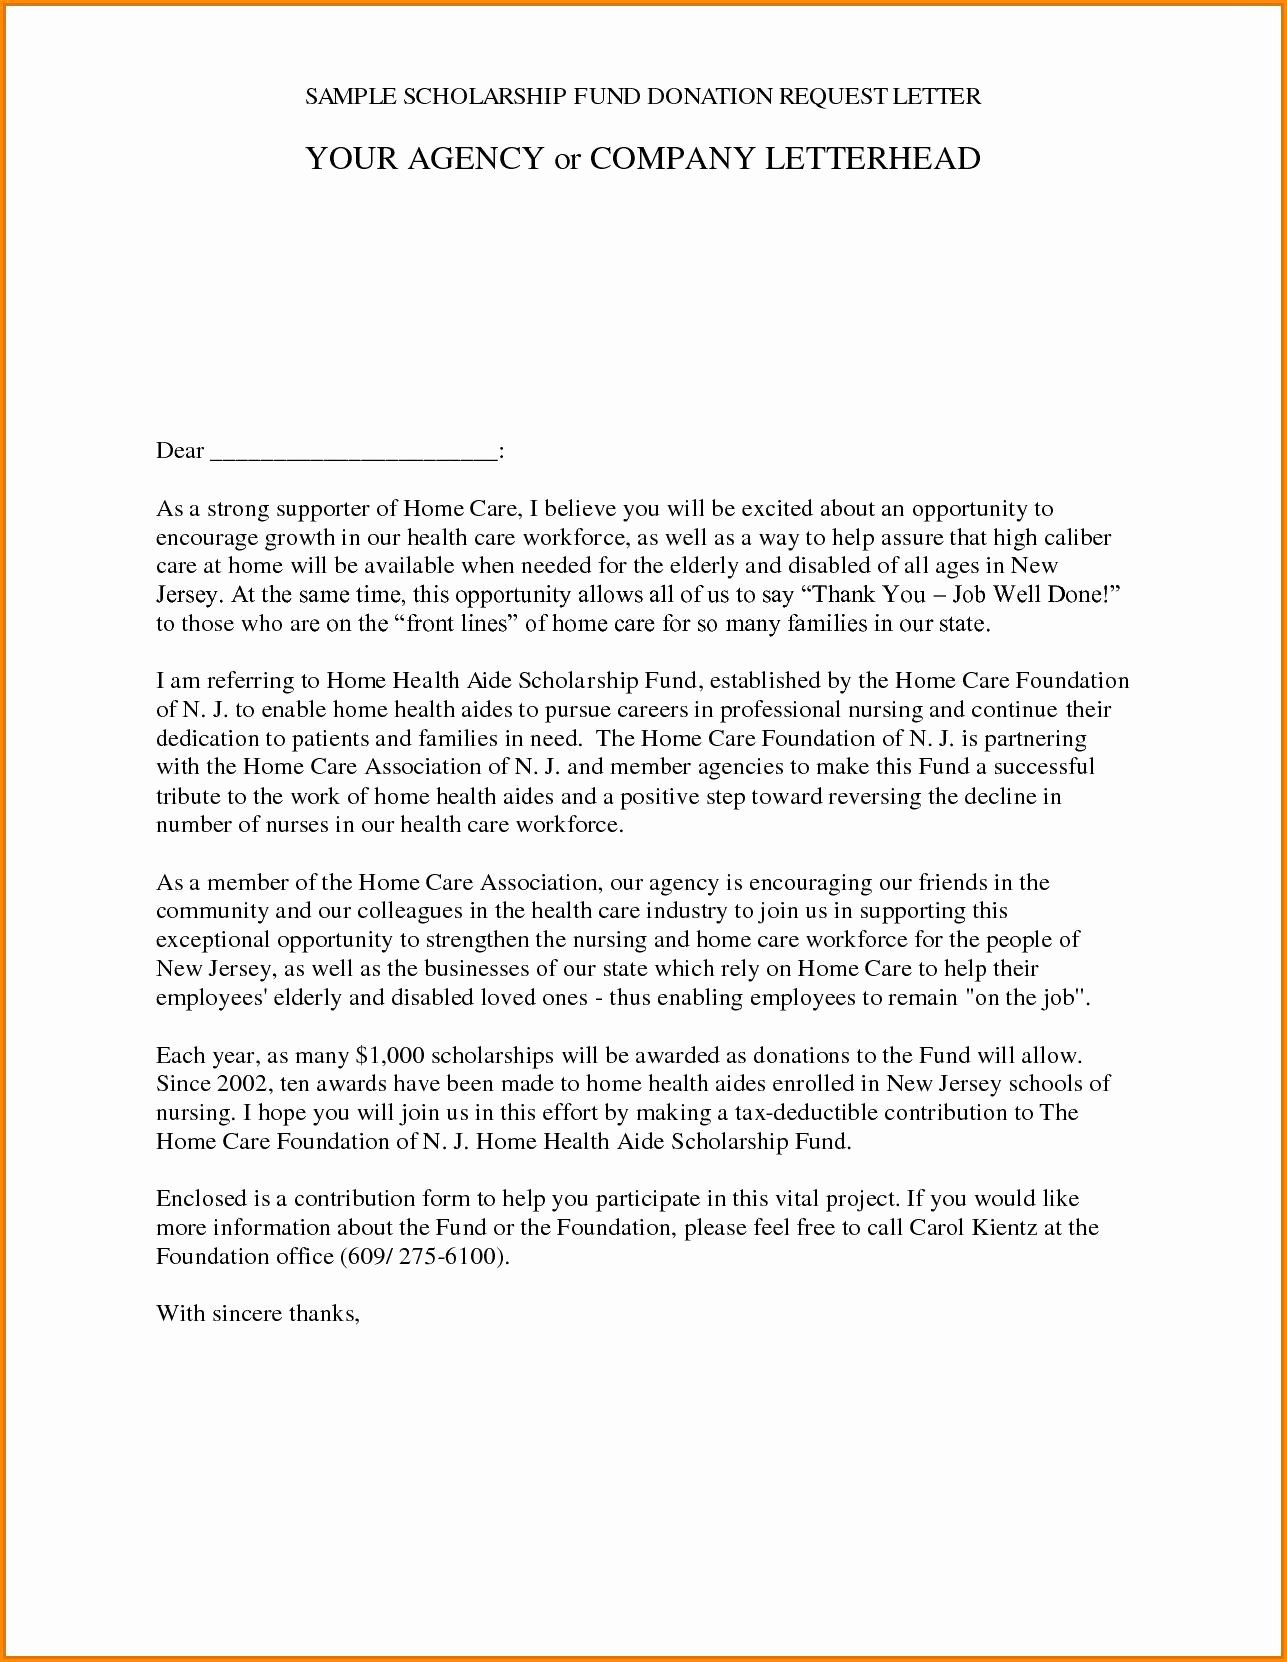 Memorial Donation Letter Template Awesome Memorial Donation Letter Template Samples